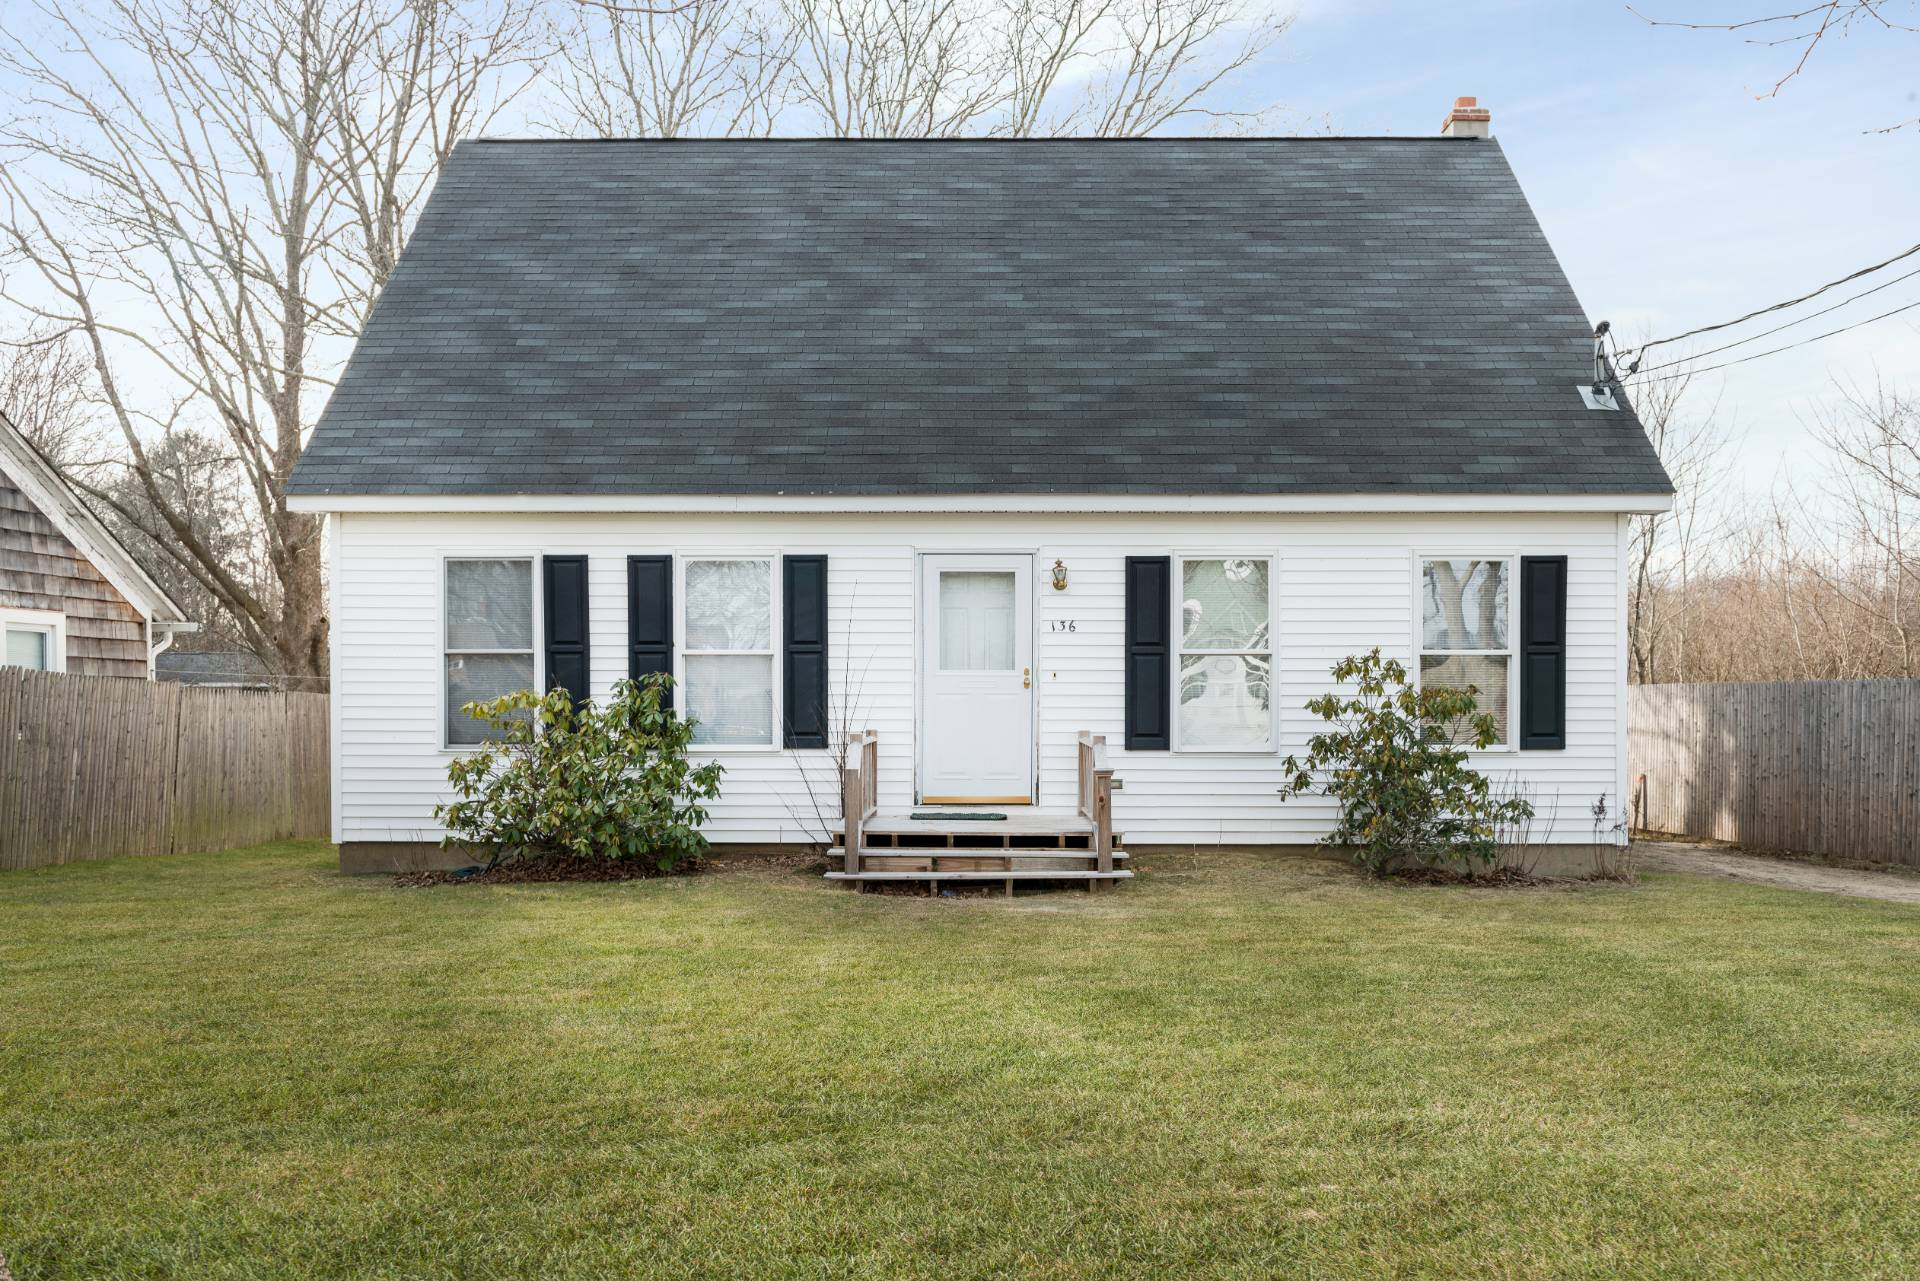 Single Family Home for Sale at Location, Location, Location 136 Norris Lane, Bridgehampton, New York